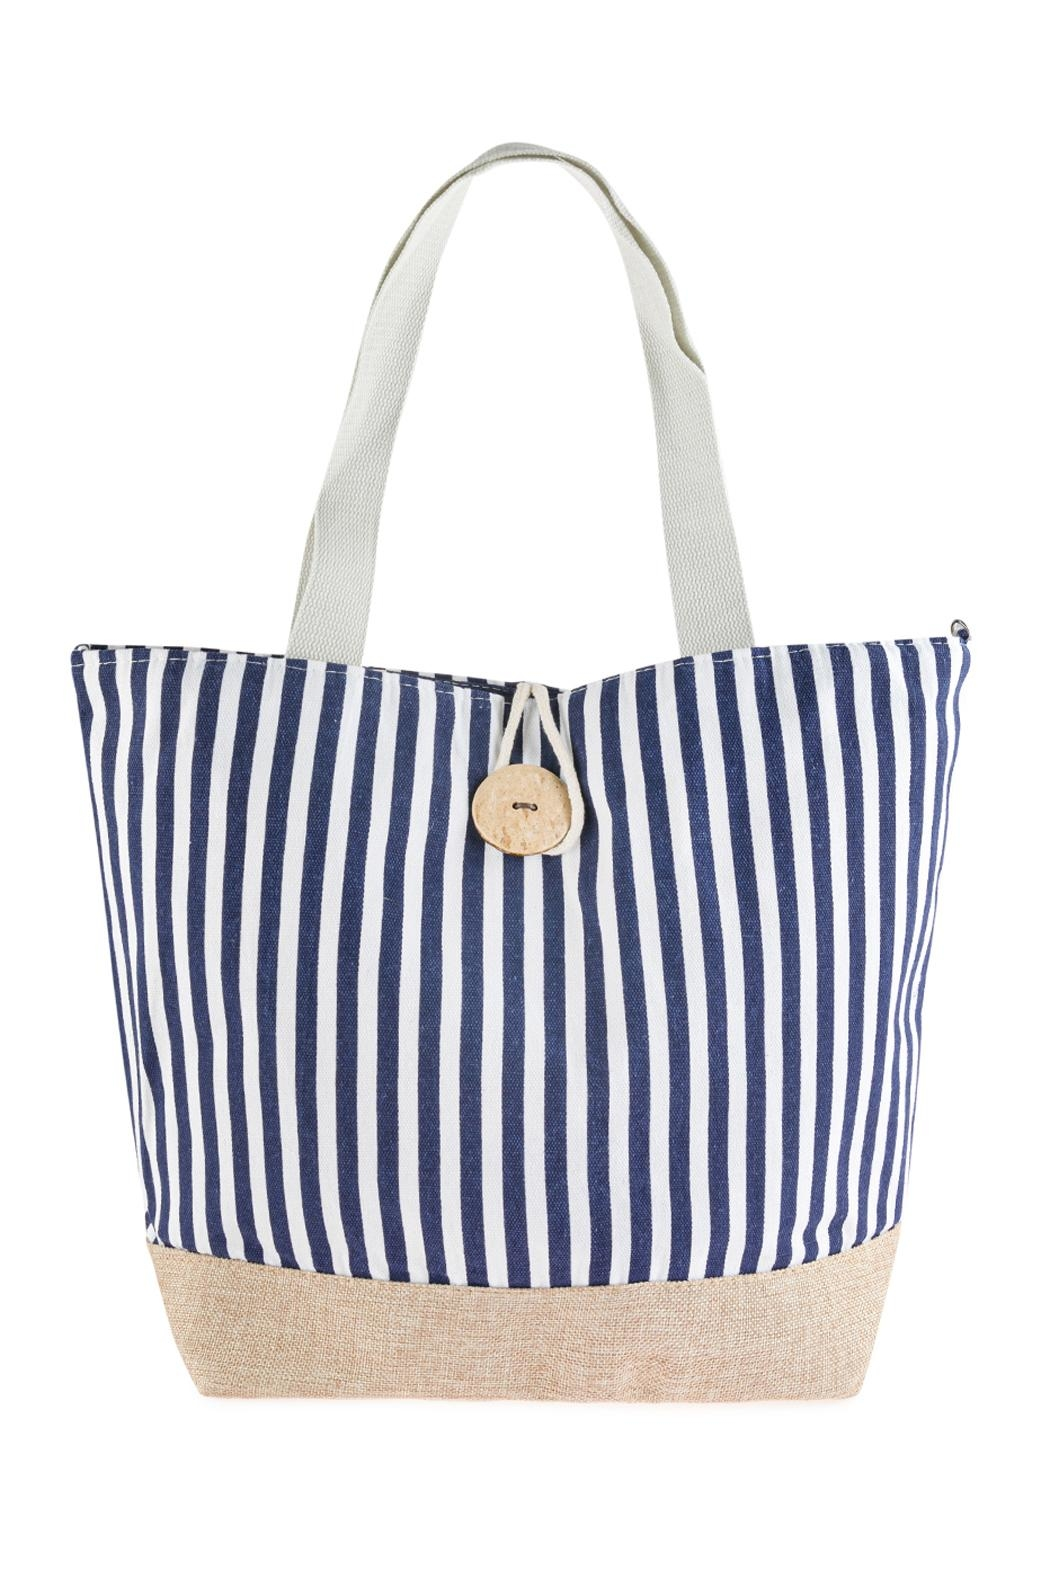 Riah Fashion Striped Tote Bag With Coconut Shell Button Tie Lock - Main Image